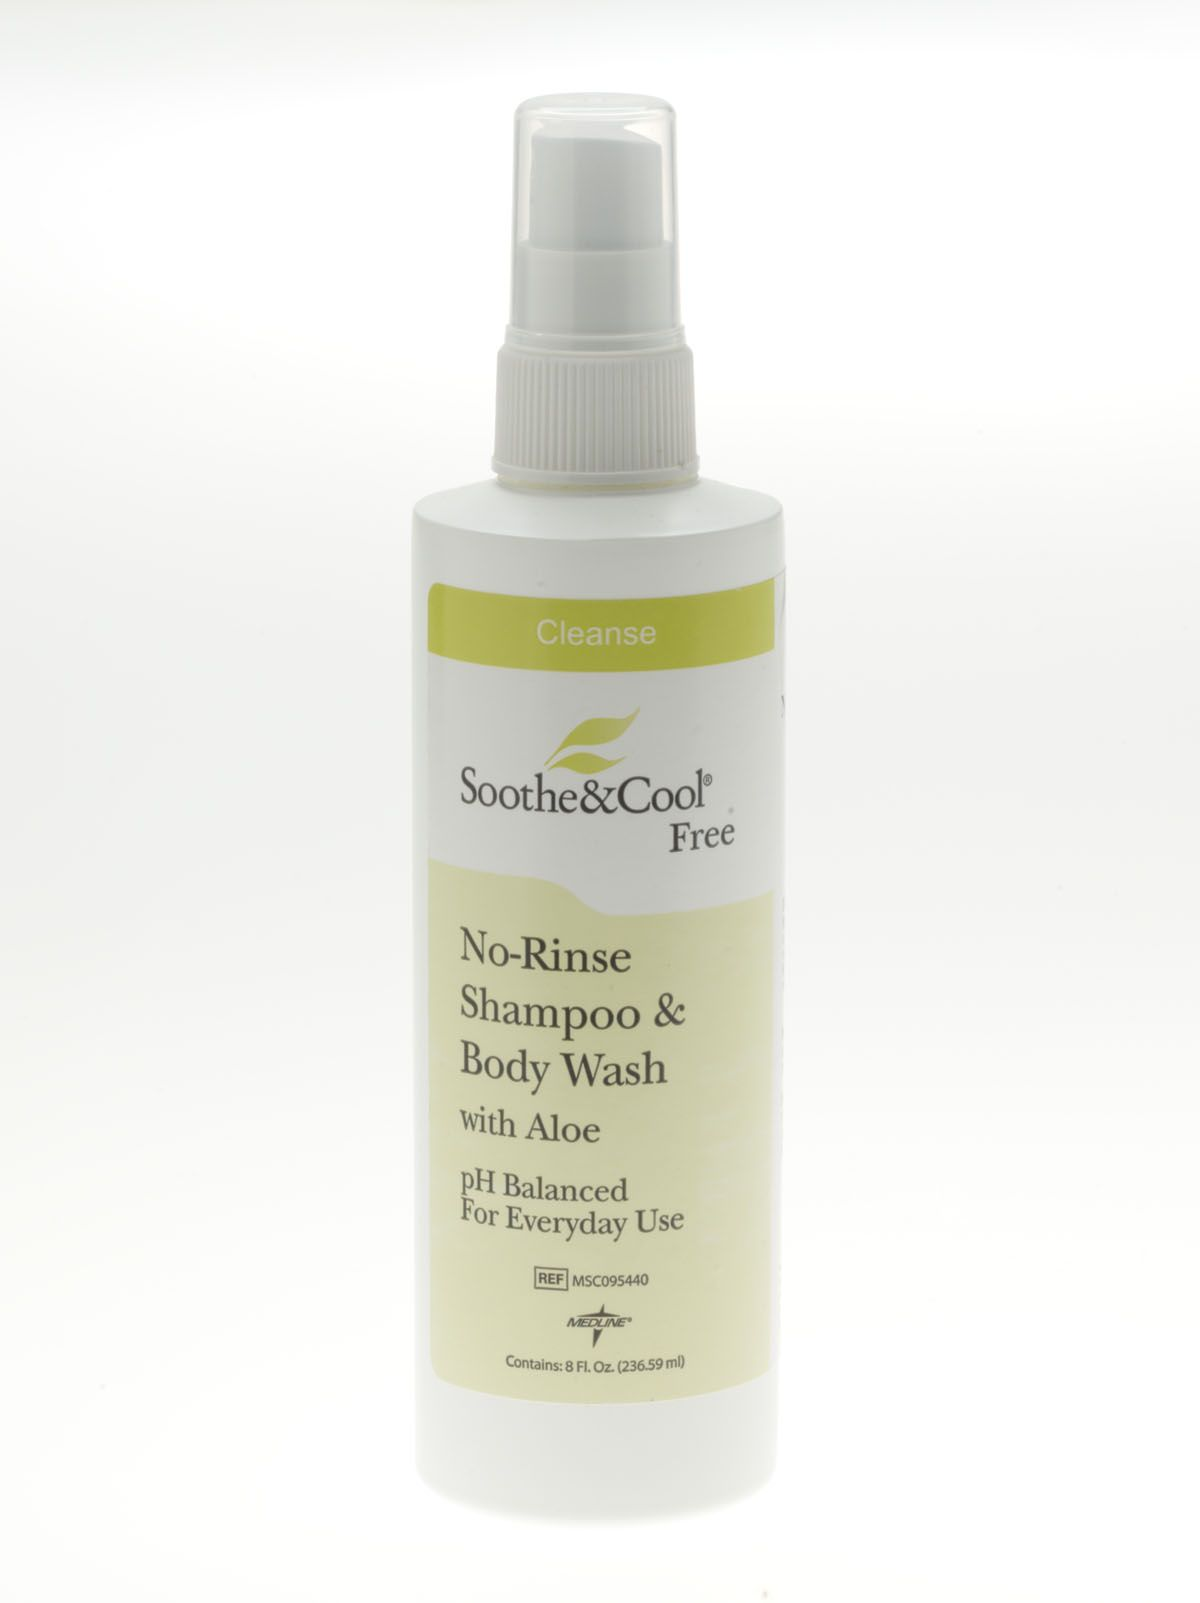 Soothe & Cool Foaming No-Rinse Skin Cleanser 8 OZ, 1 Count Lindi Skin Cooler ROLL (4 x 5)